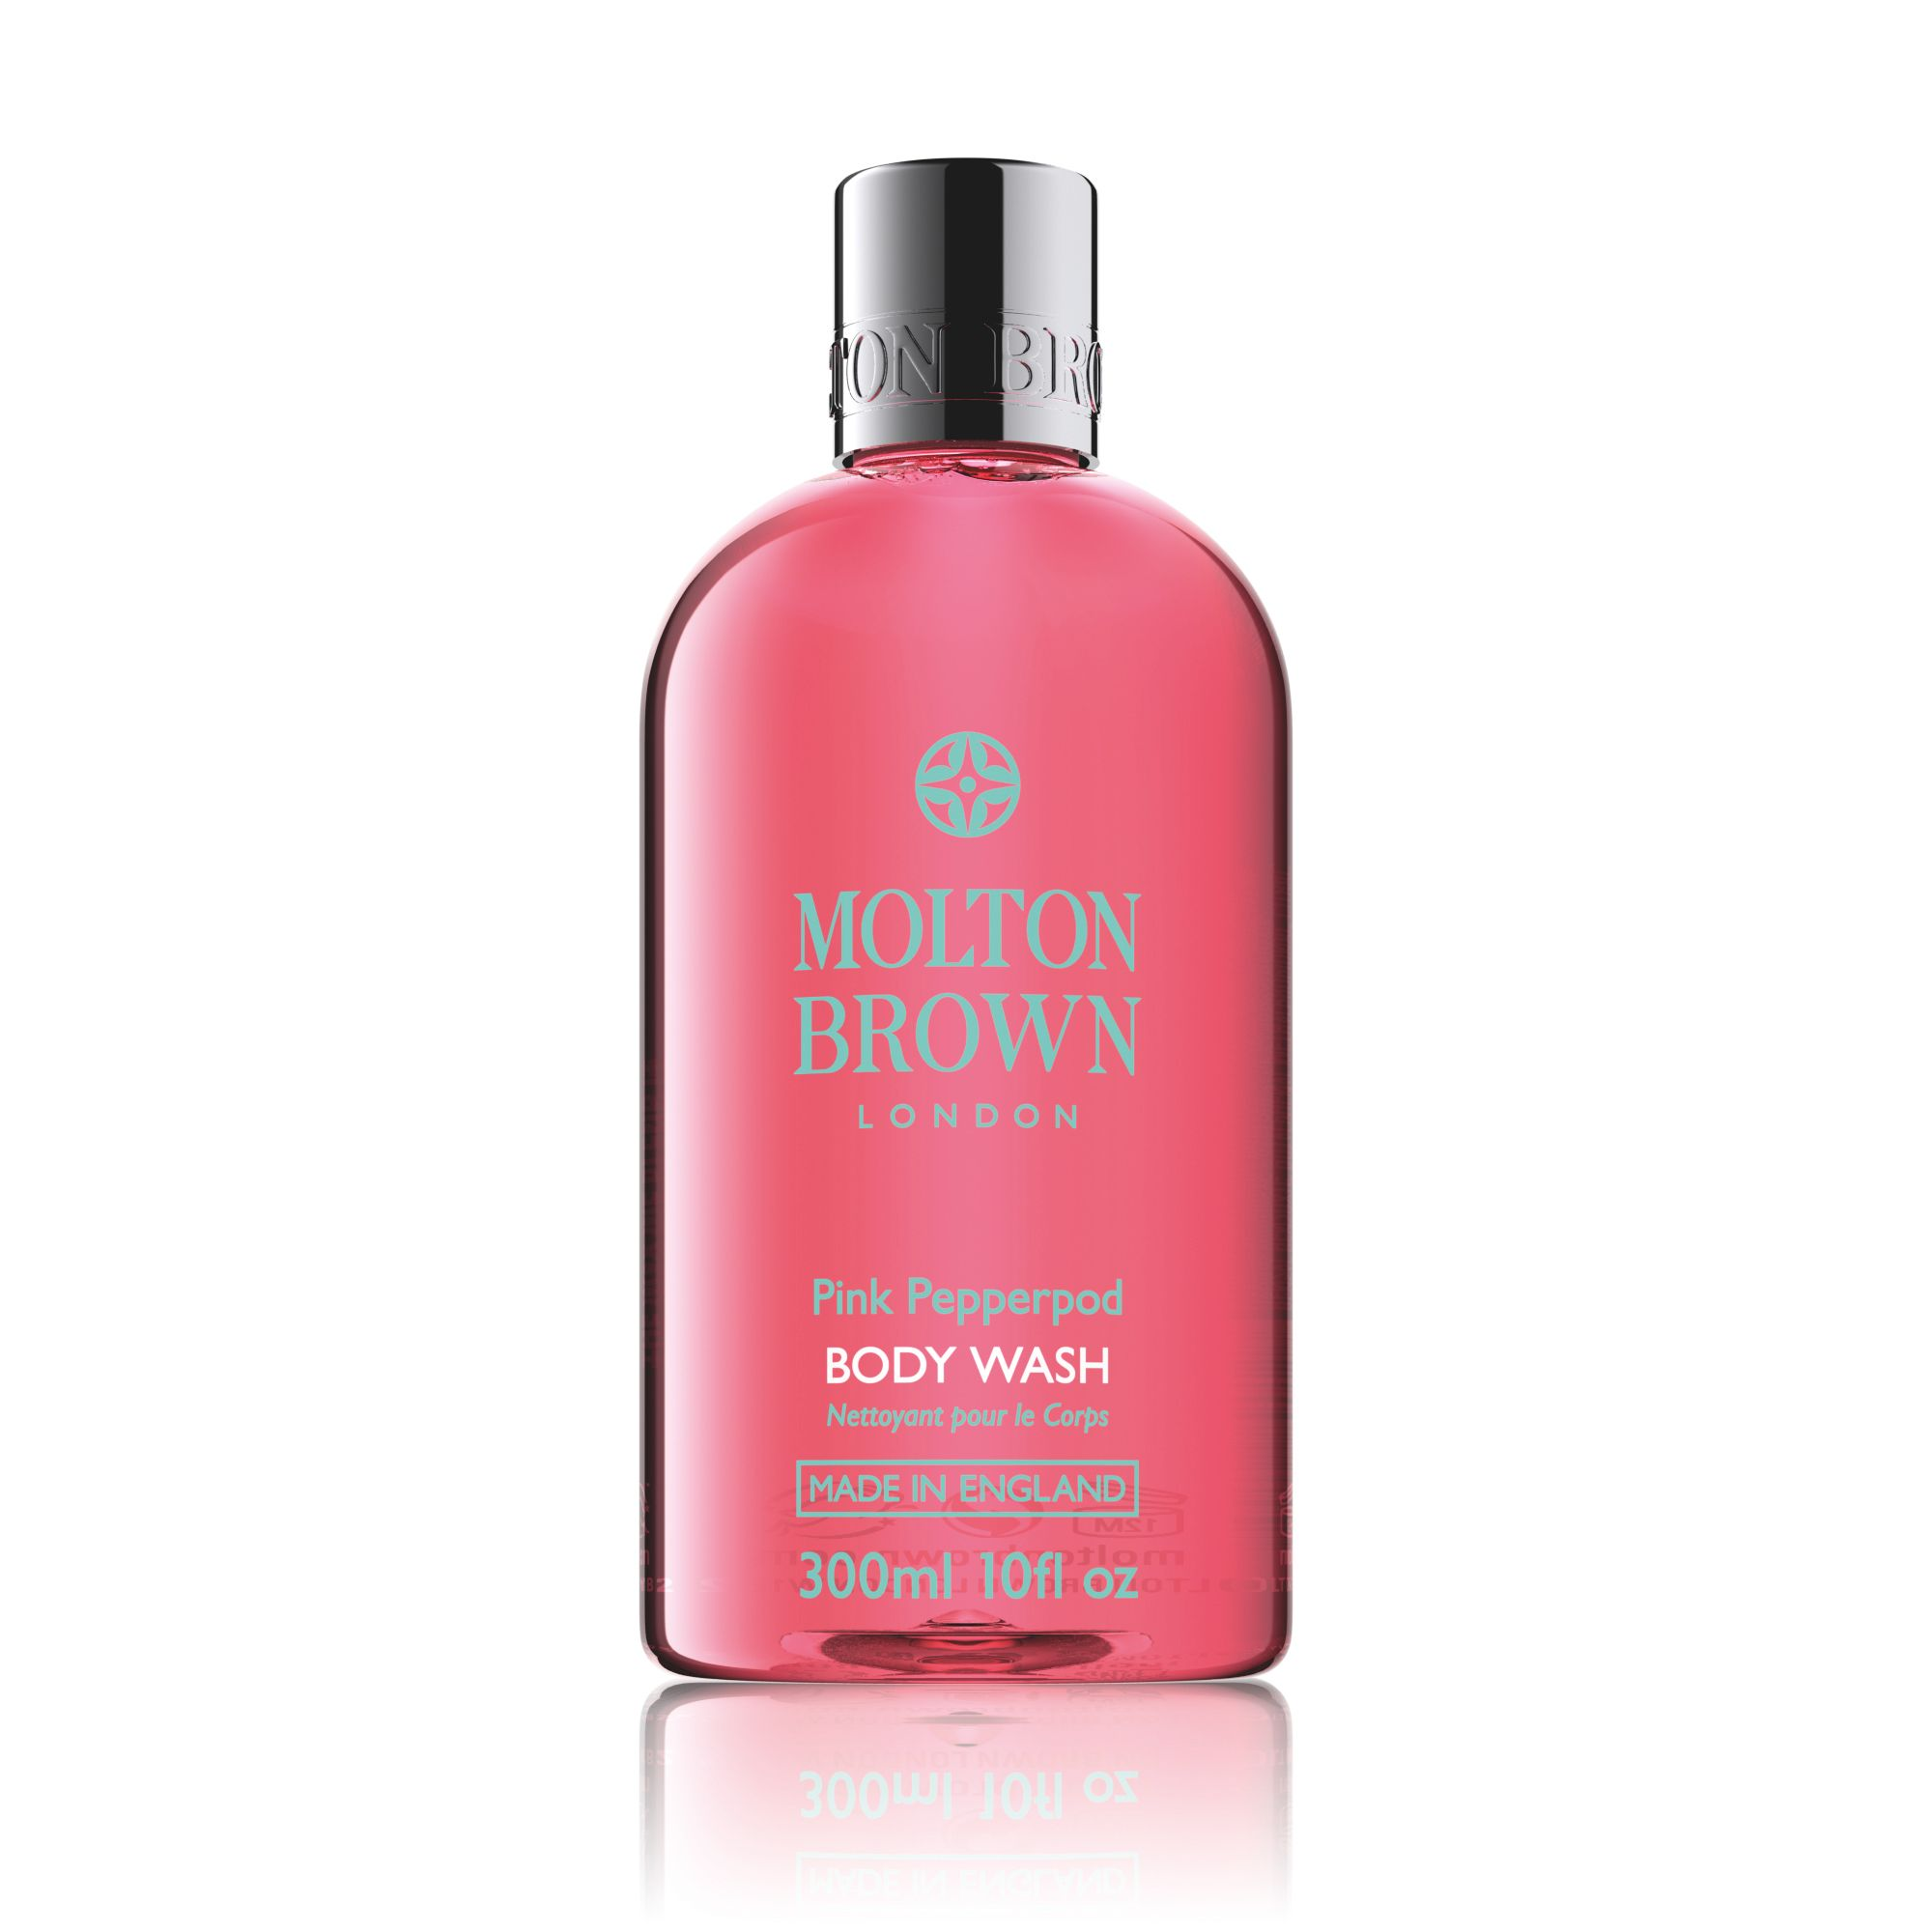 Pink Pepperpod BODY WASH